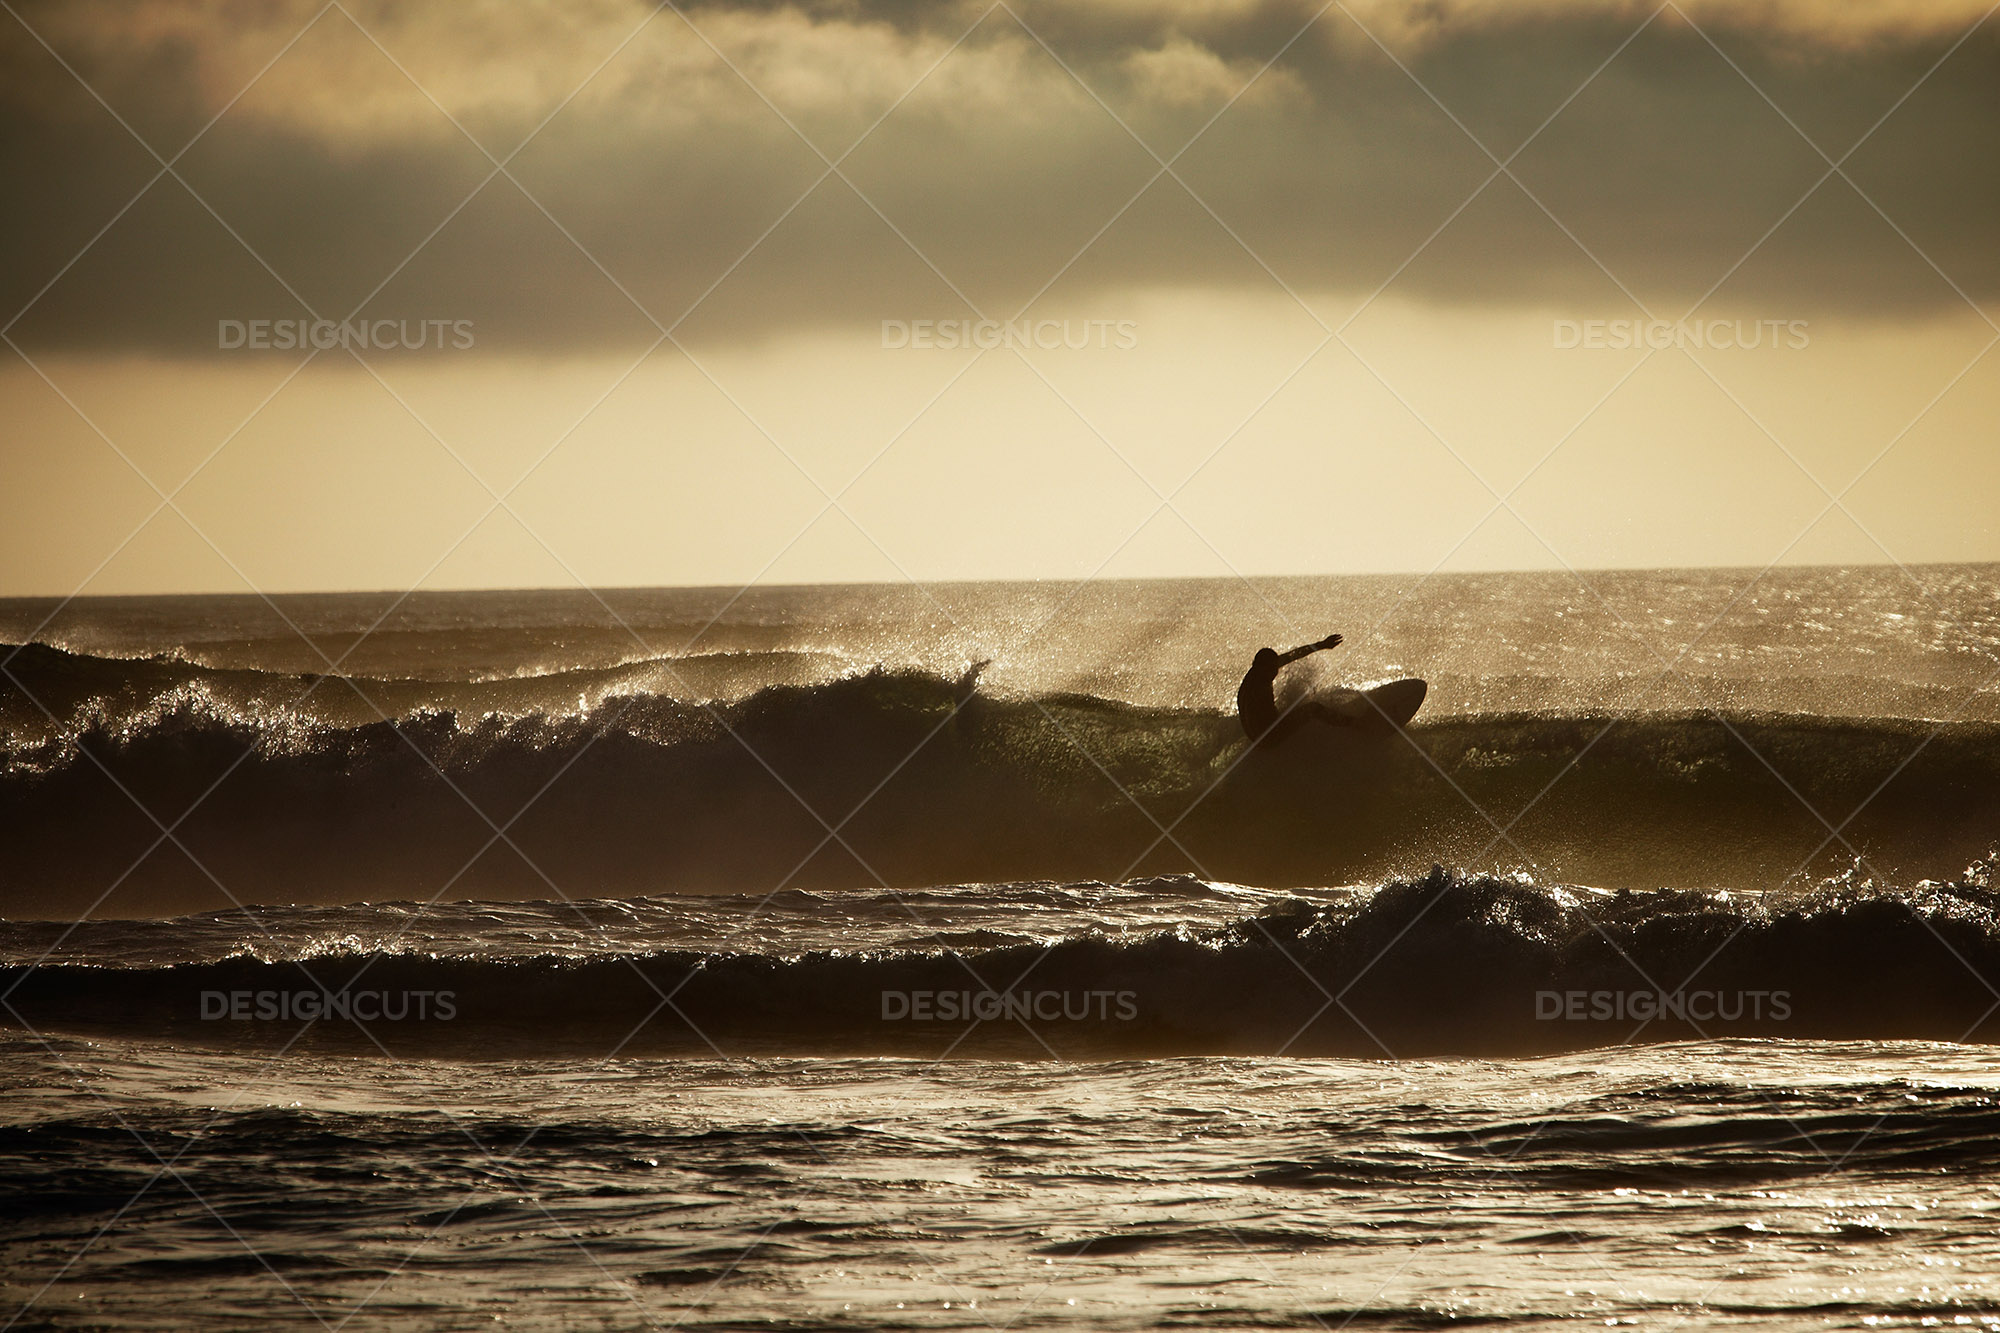 Surfer Riding Waves British Seaside